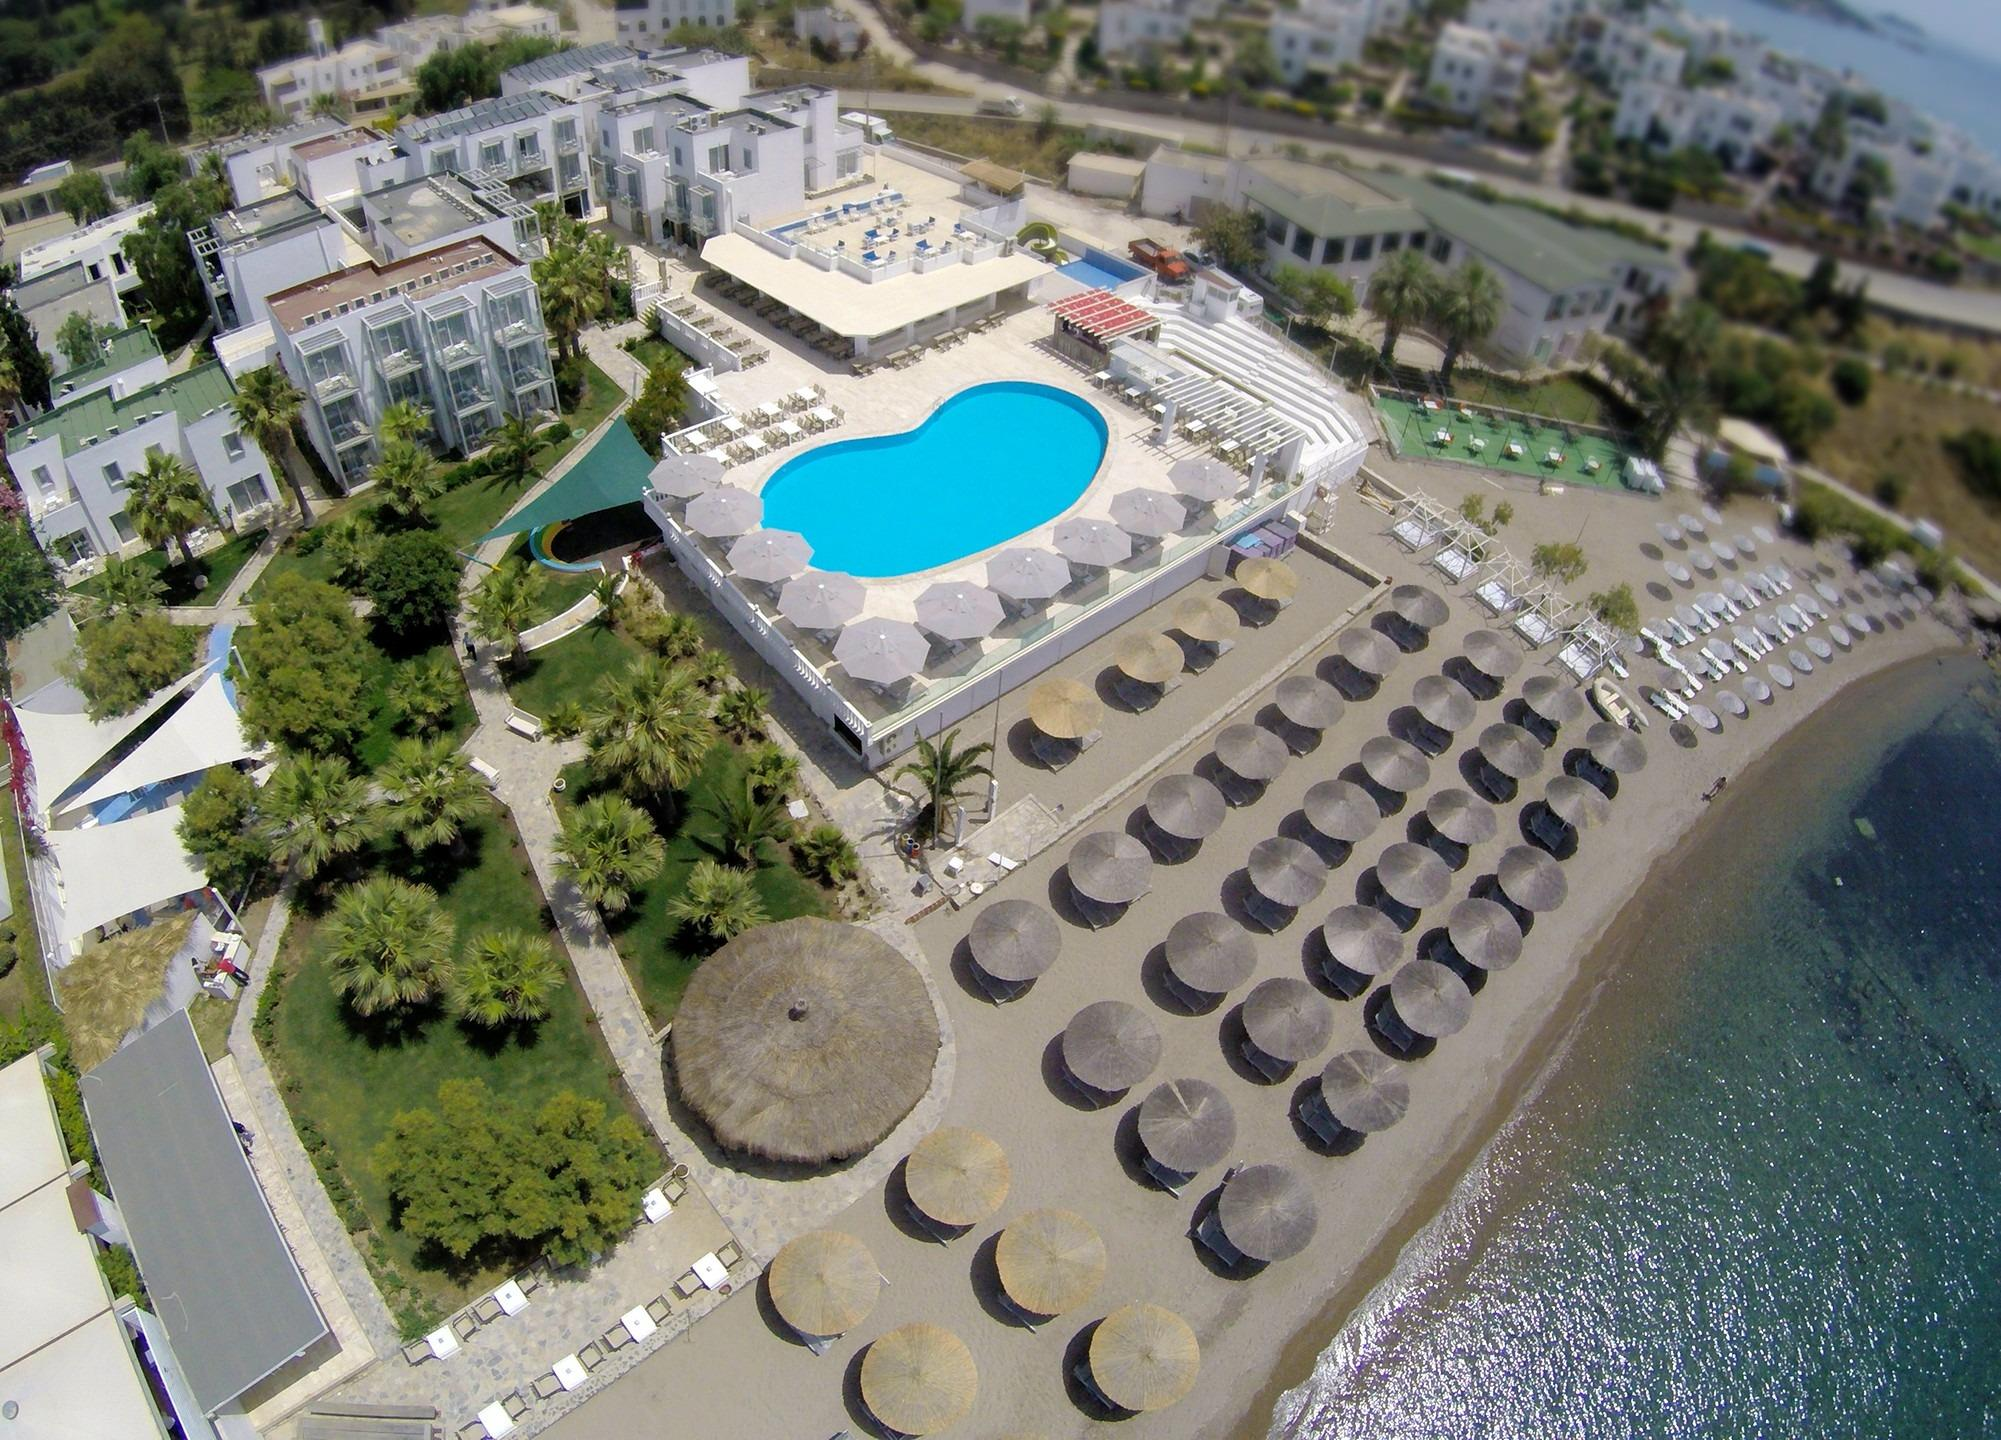 Bodrum Charm Beach Resort 4* Turgutreis Tour